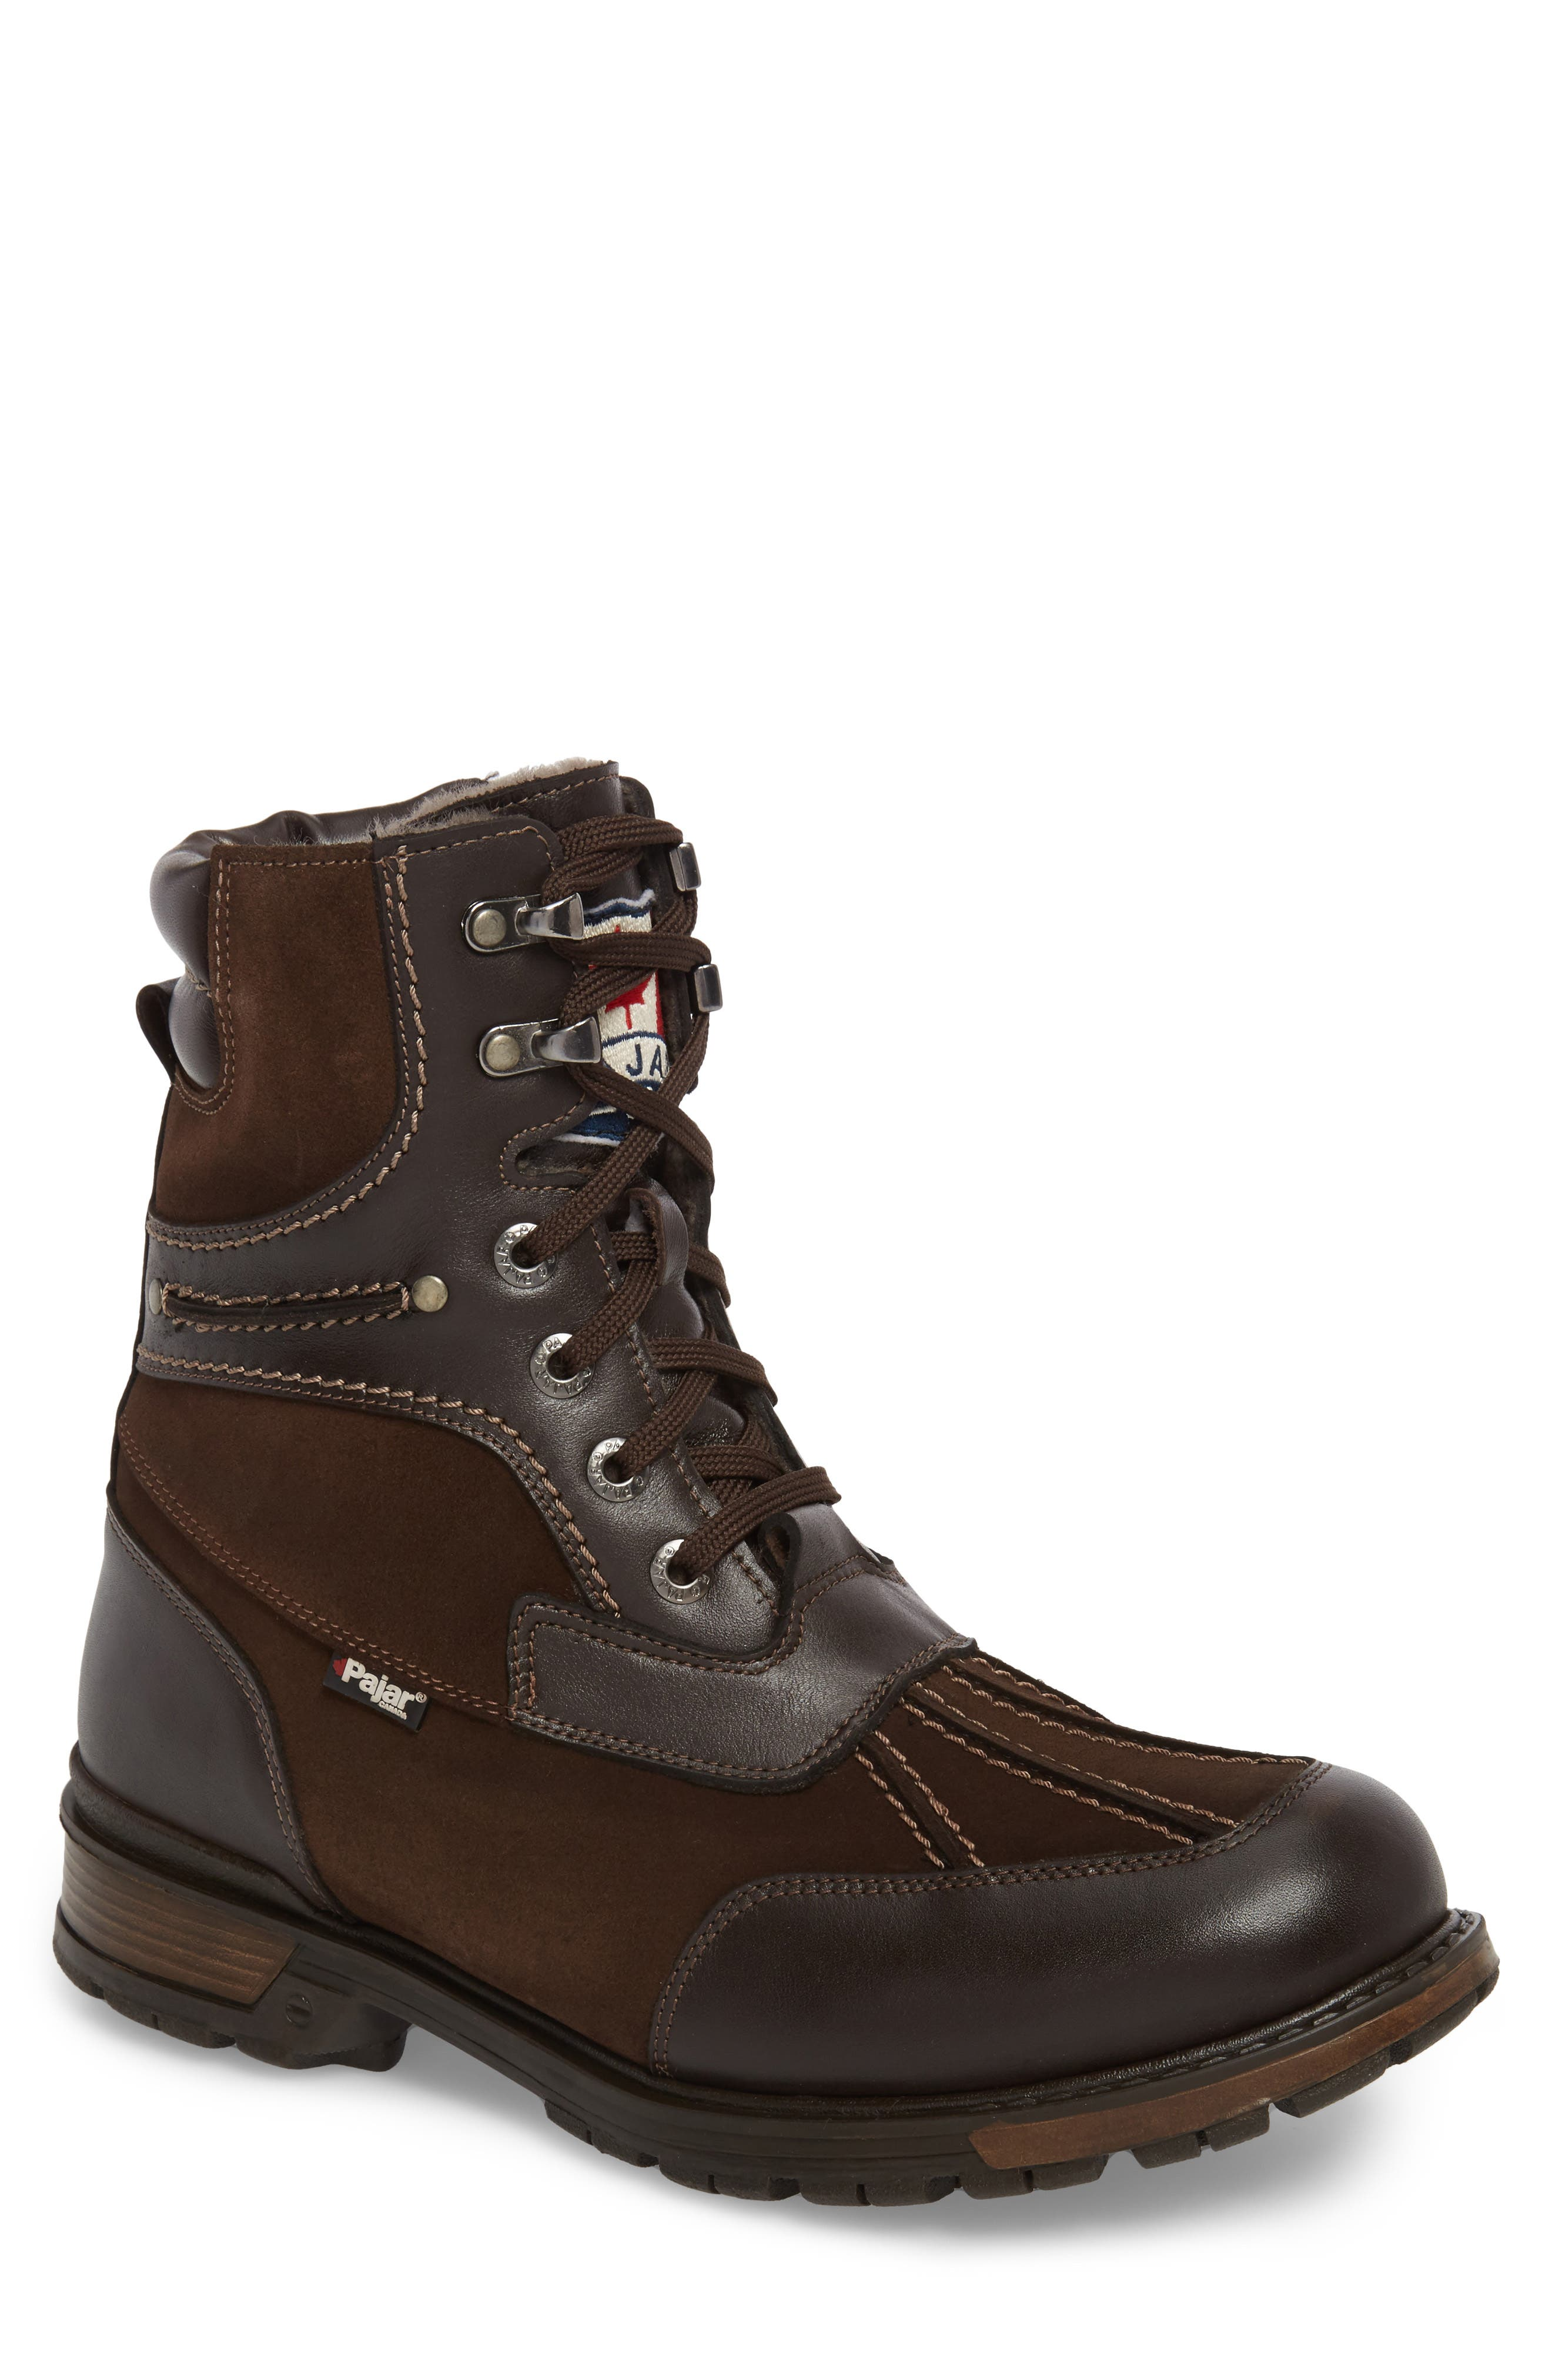 'Carrefour' Snow Boot,                             Main thumbnail 1, color,                             DARK BROWN LEATHER